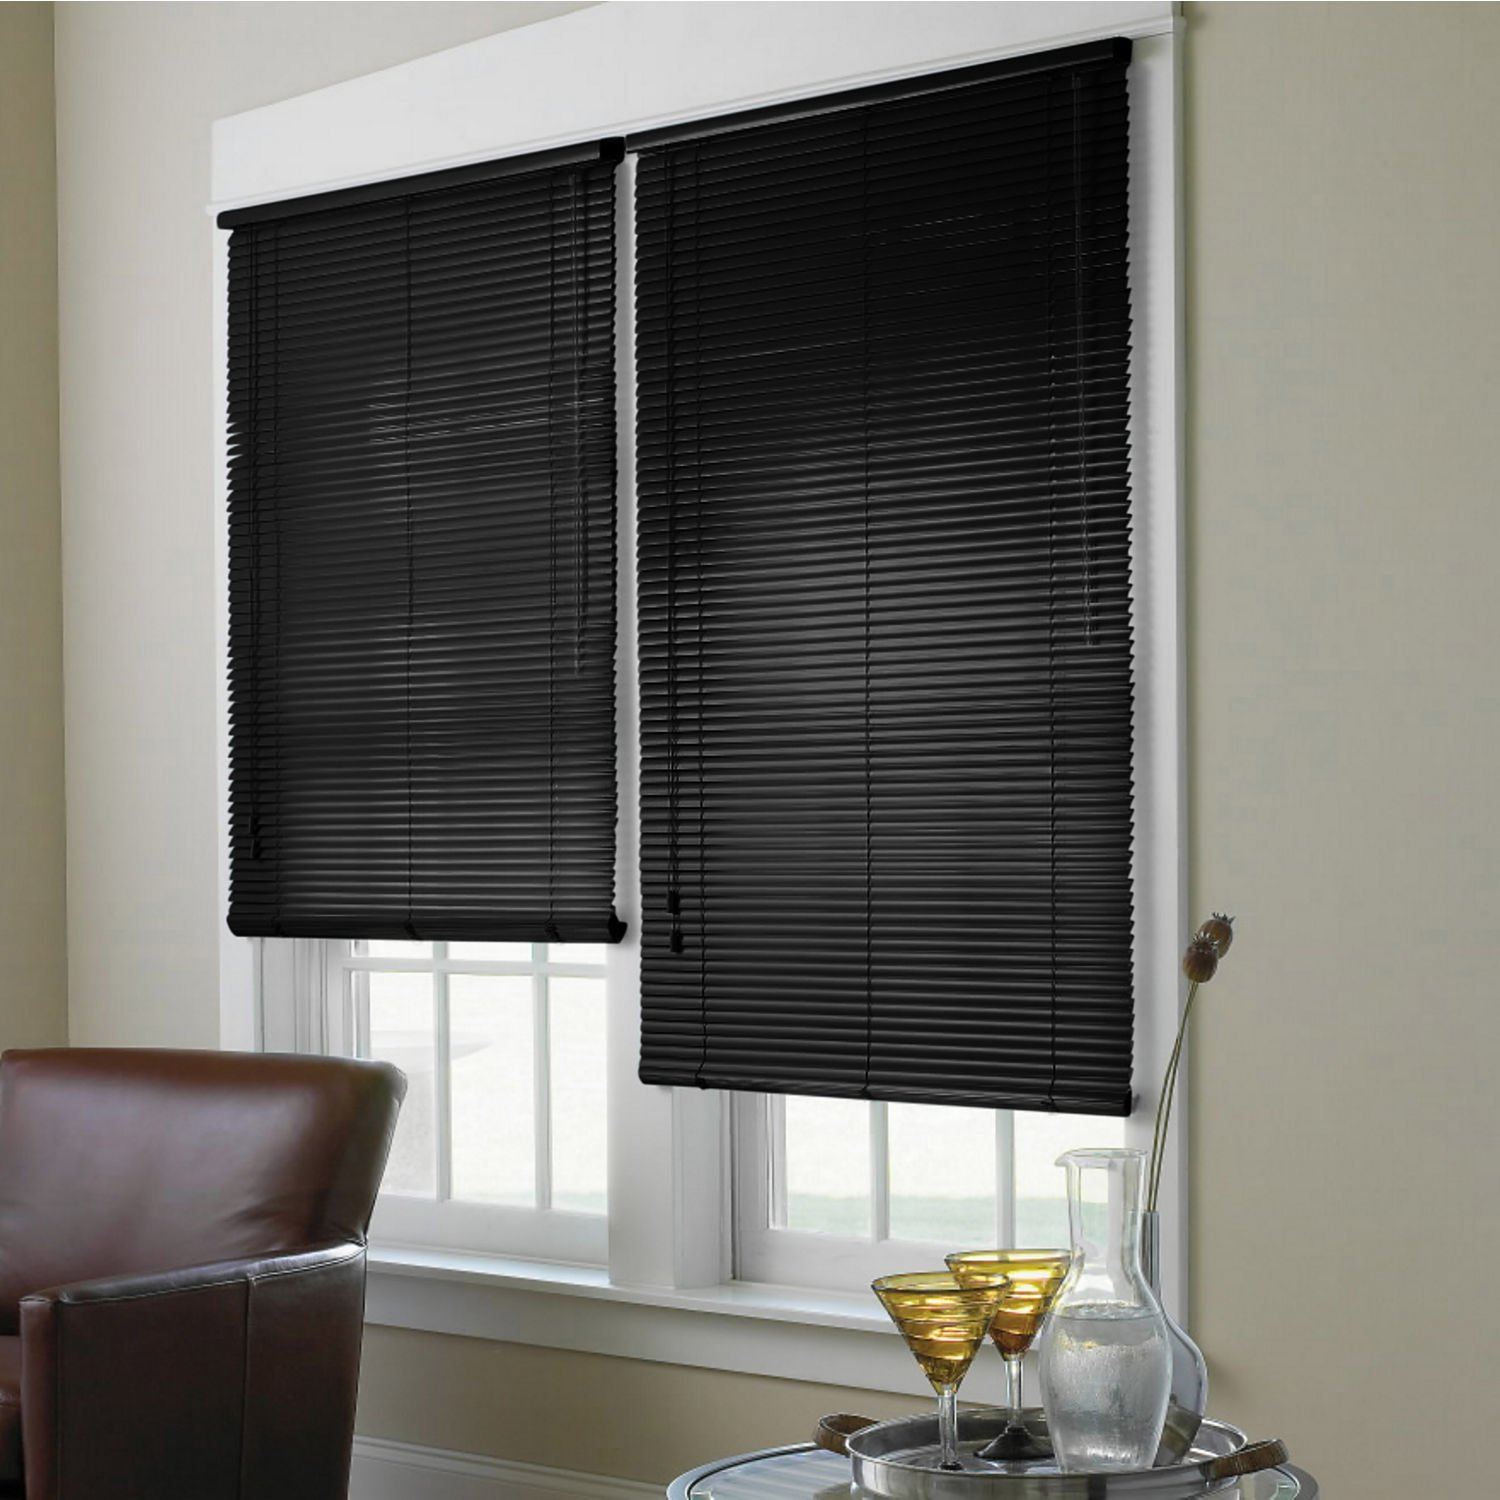 1 Spectra High Gloss Vinyl Mini Blinds Black 46x64 By Window Blind Store Amazon In Home Kitchen